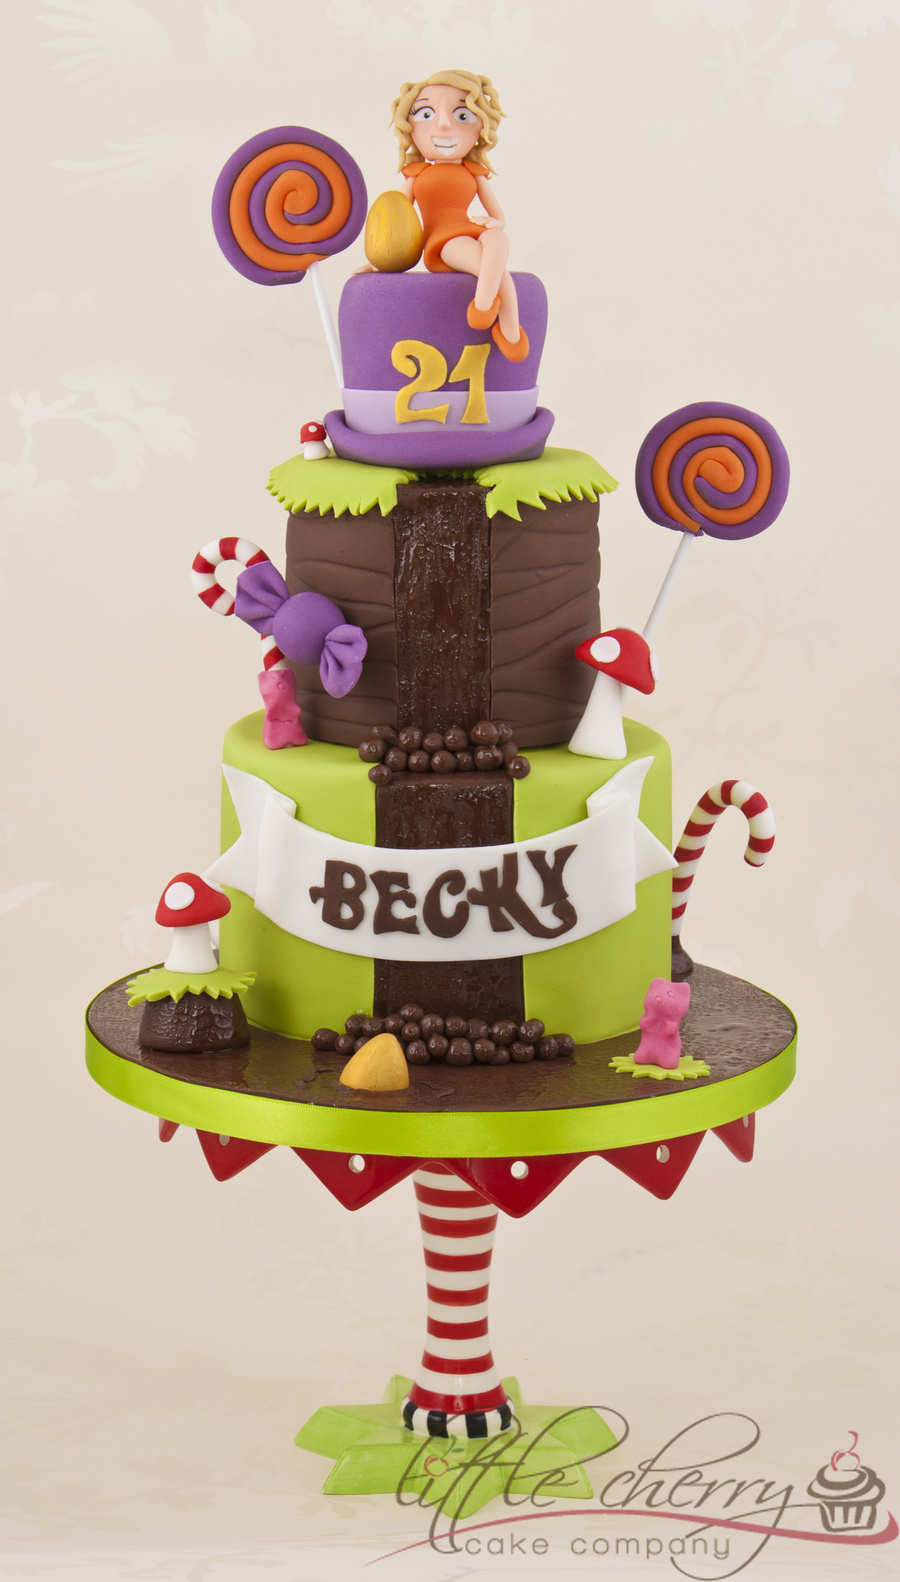 Charlie And The Chocolate Factory / Willy Wonka Cake  on Cake Central